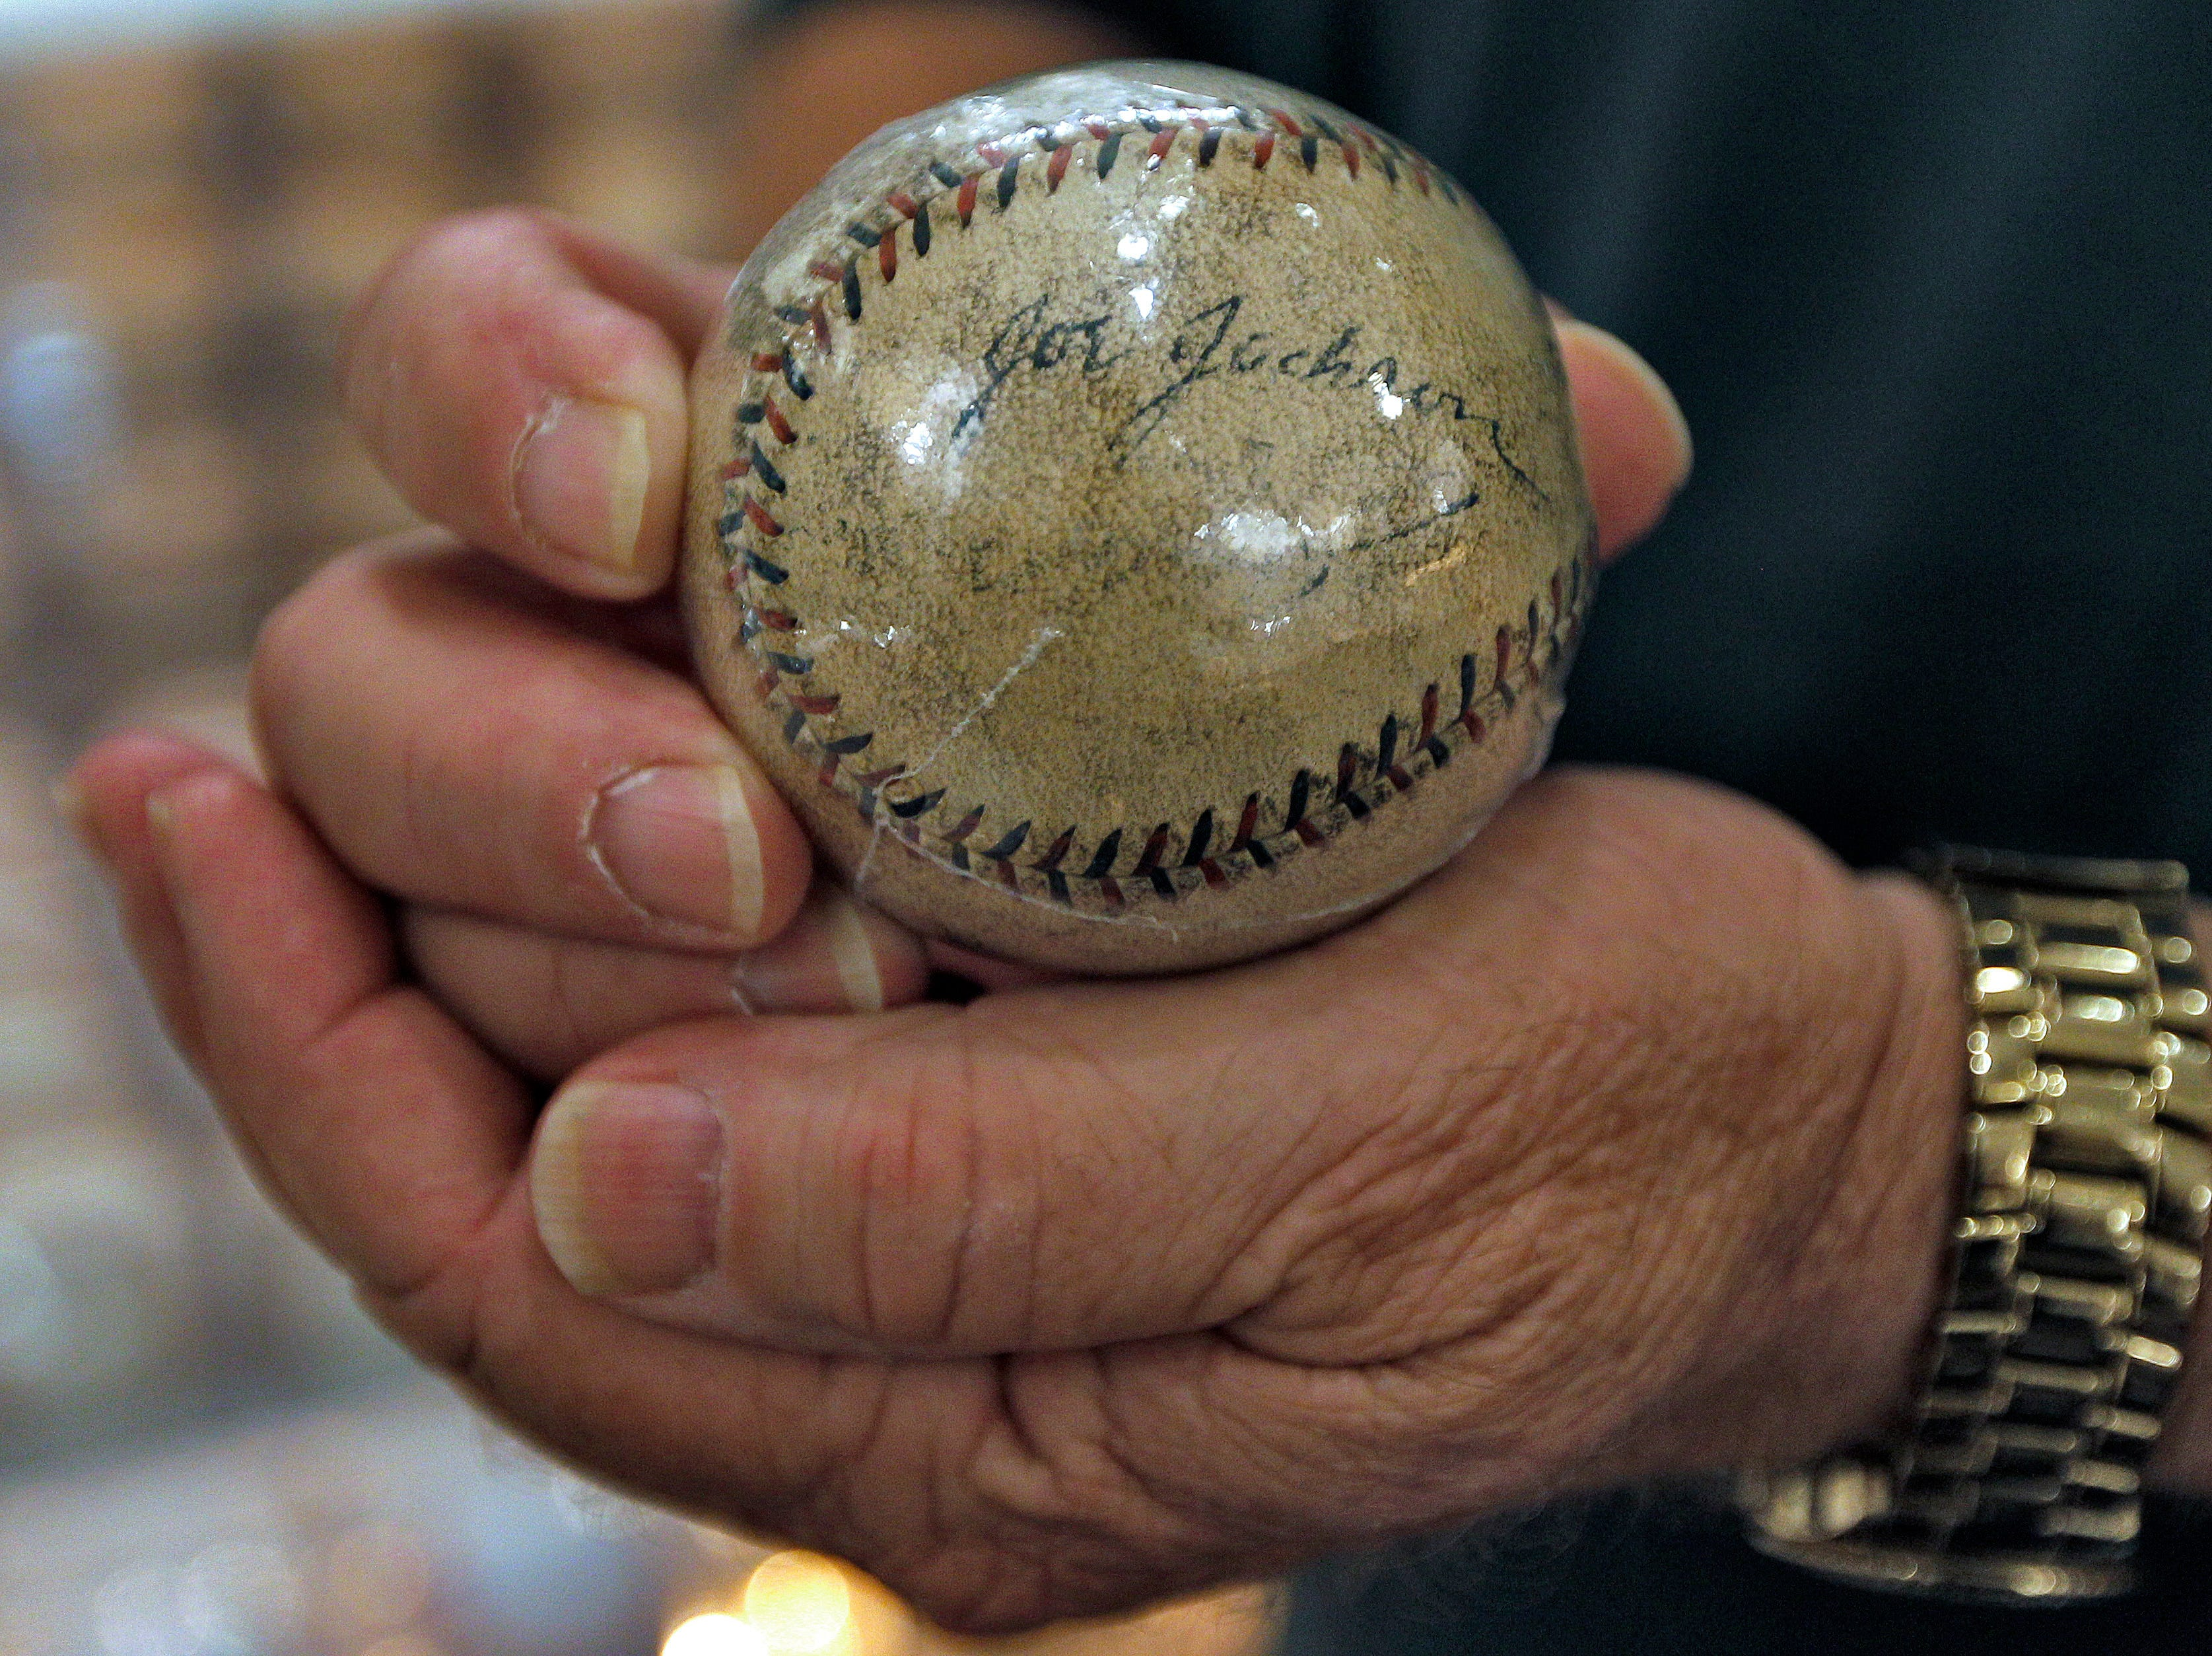 "In this Tuesday Sept. 27, 2011 photo, Dennis Schrader holds a 'Shoeless Joe"" Jackson autographed baseball at his home in Odessa, Fla. (AP Photo/Chris O'Meara)"